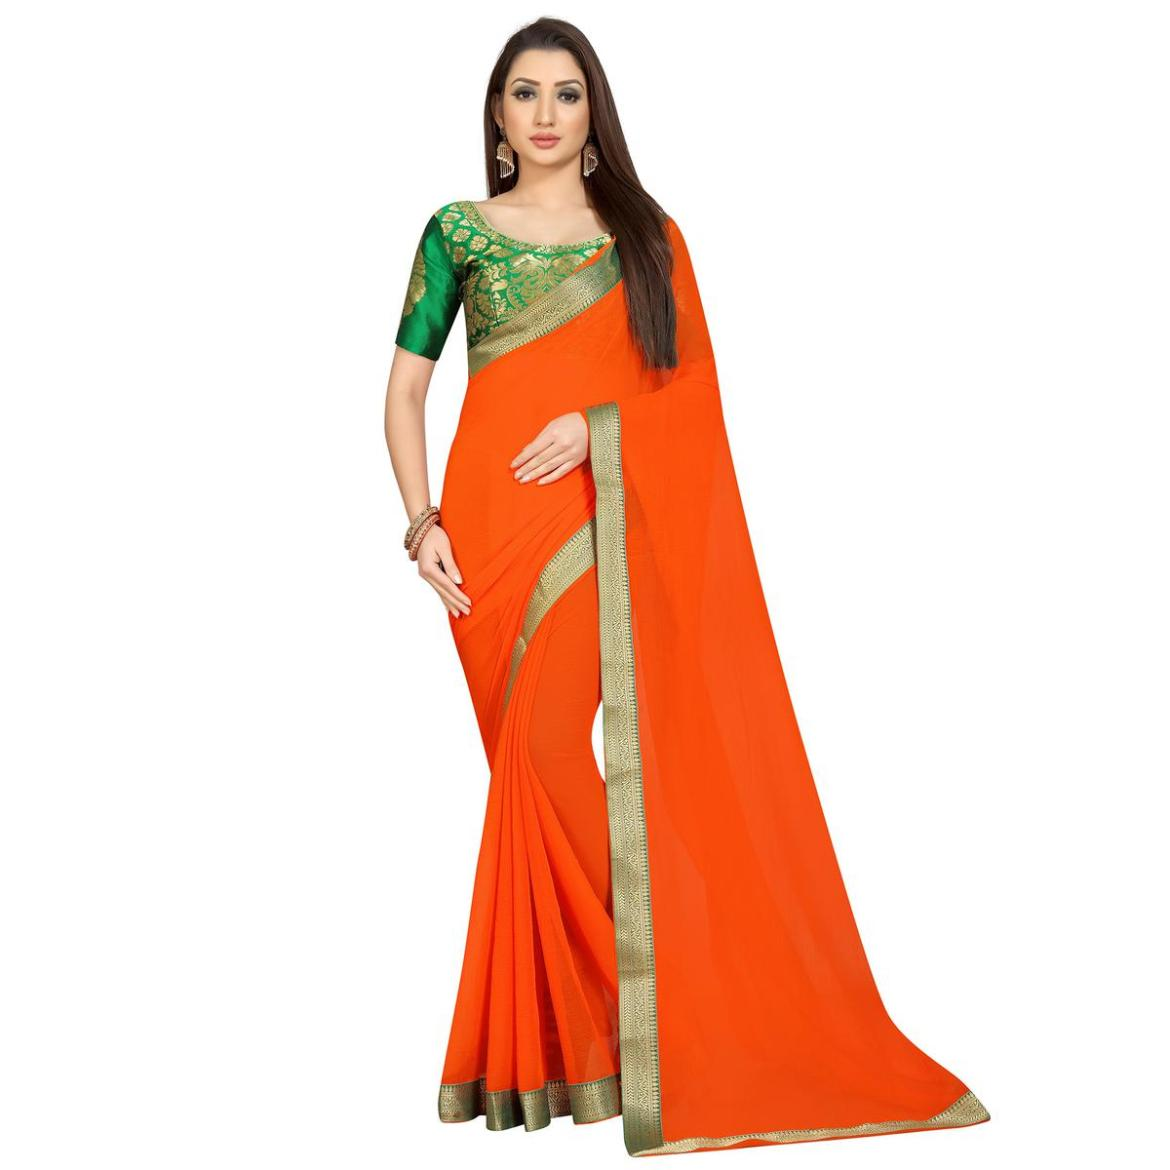 Energetic Orange Colored Partywear Chiffon Saree